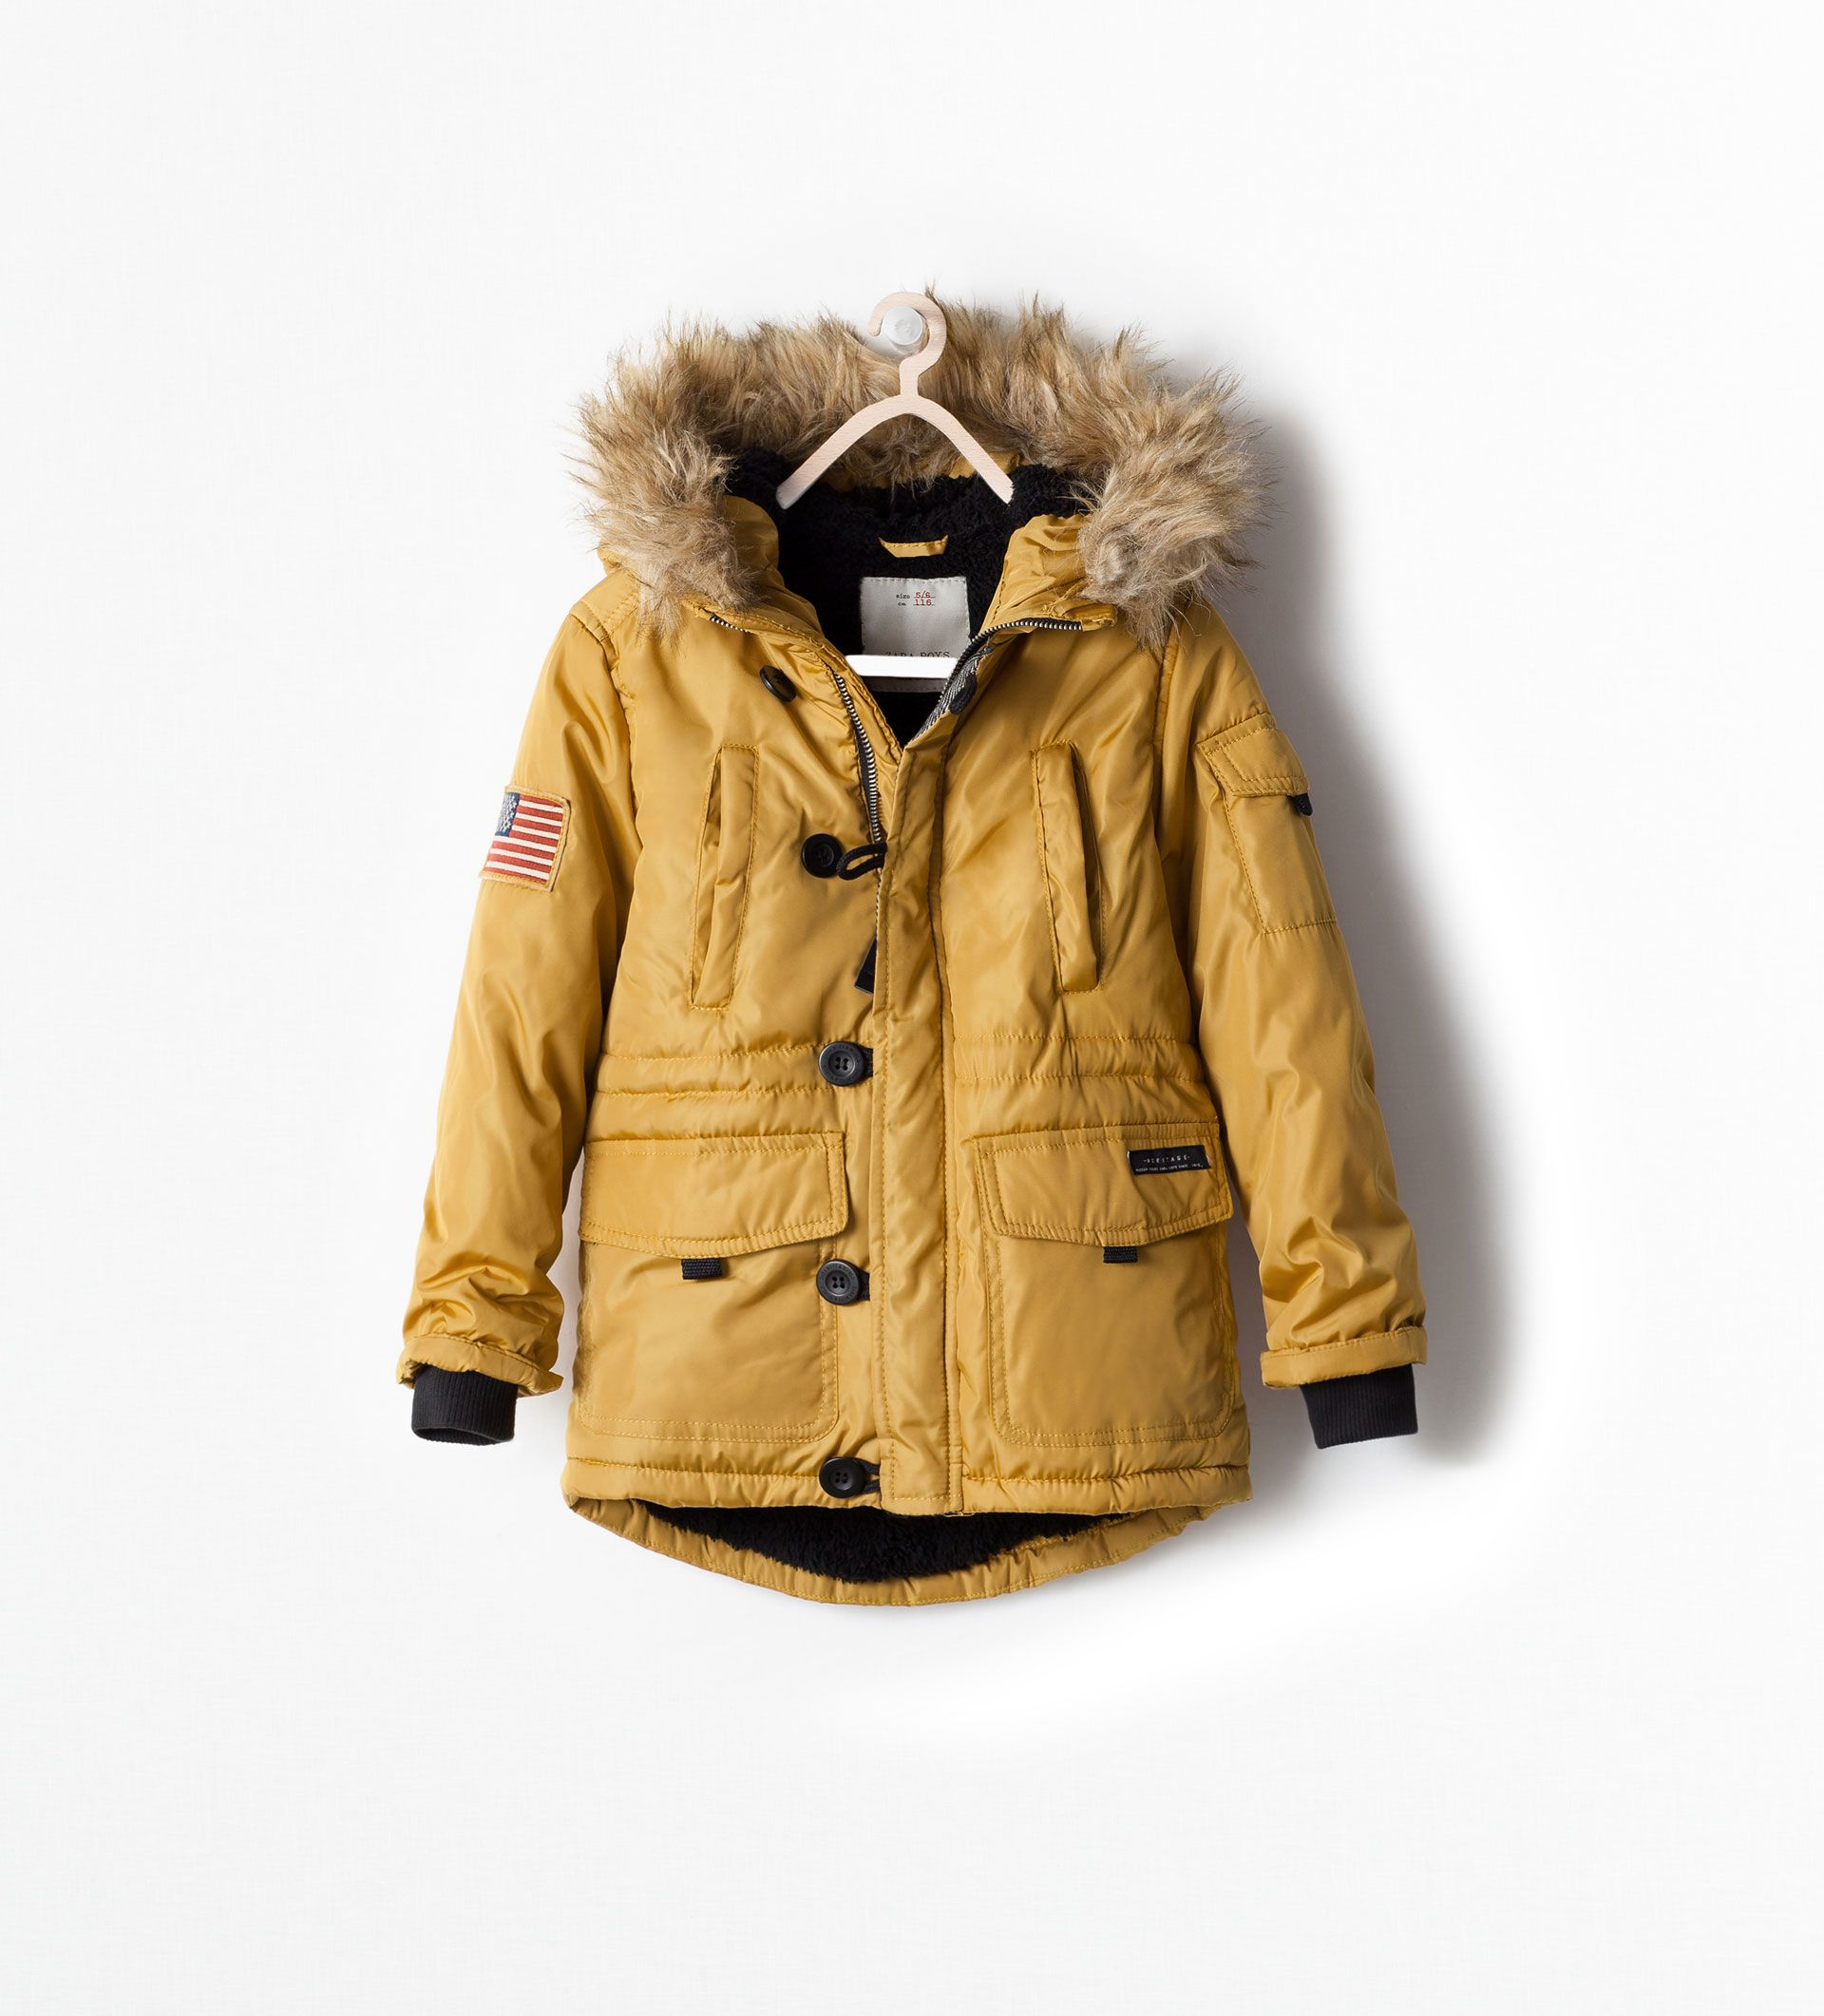 68c55b7d1 ZARA - KIDS - PADDED COAT WITH DETACHABLE FUR